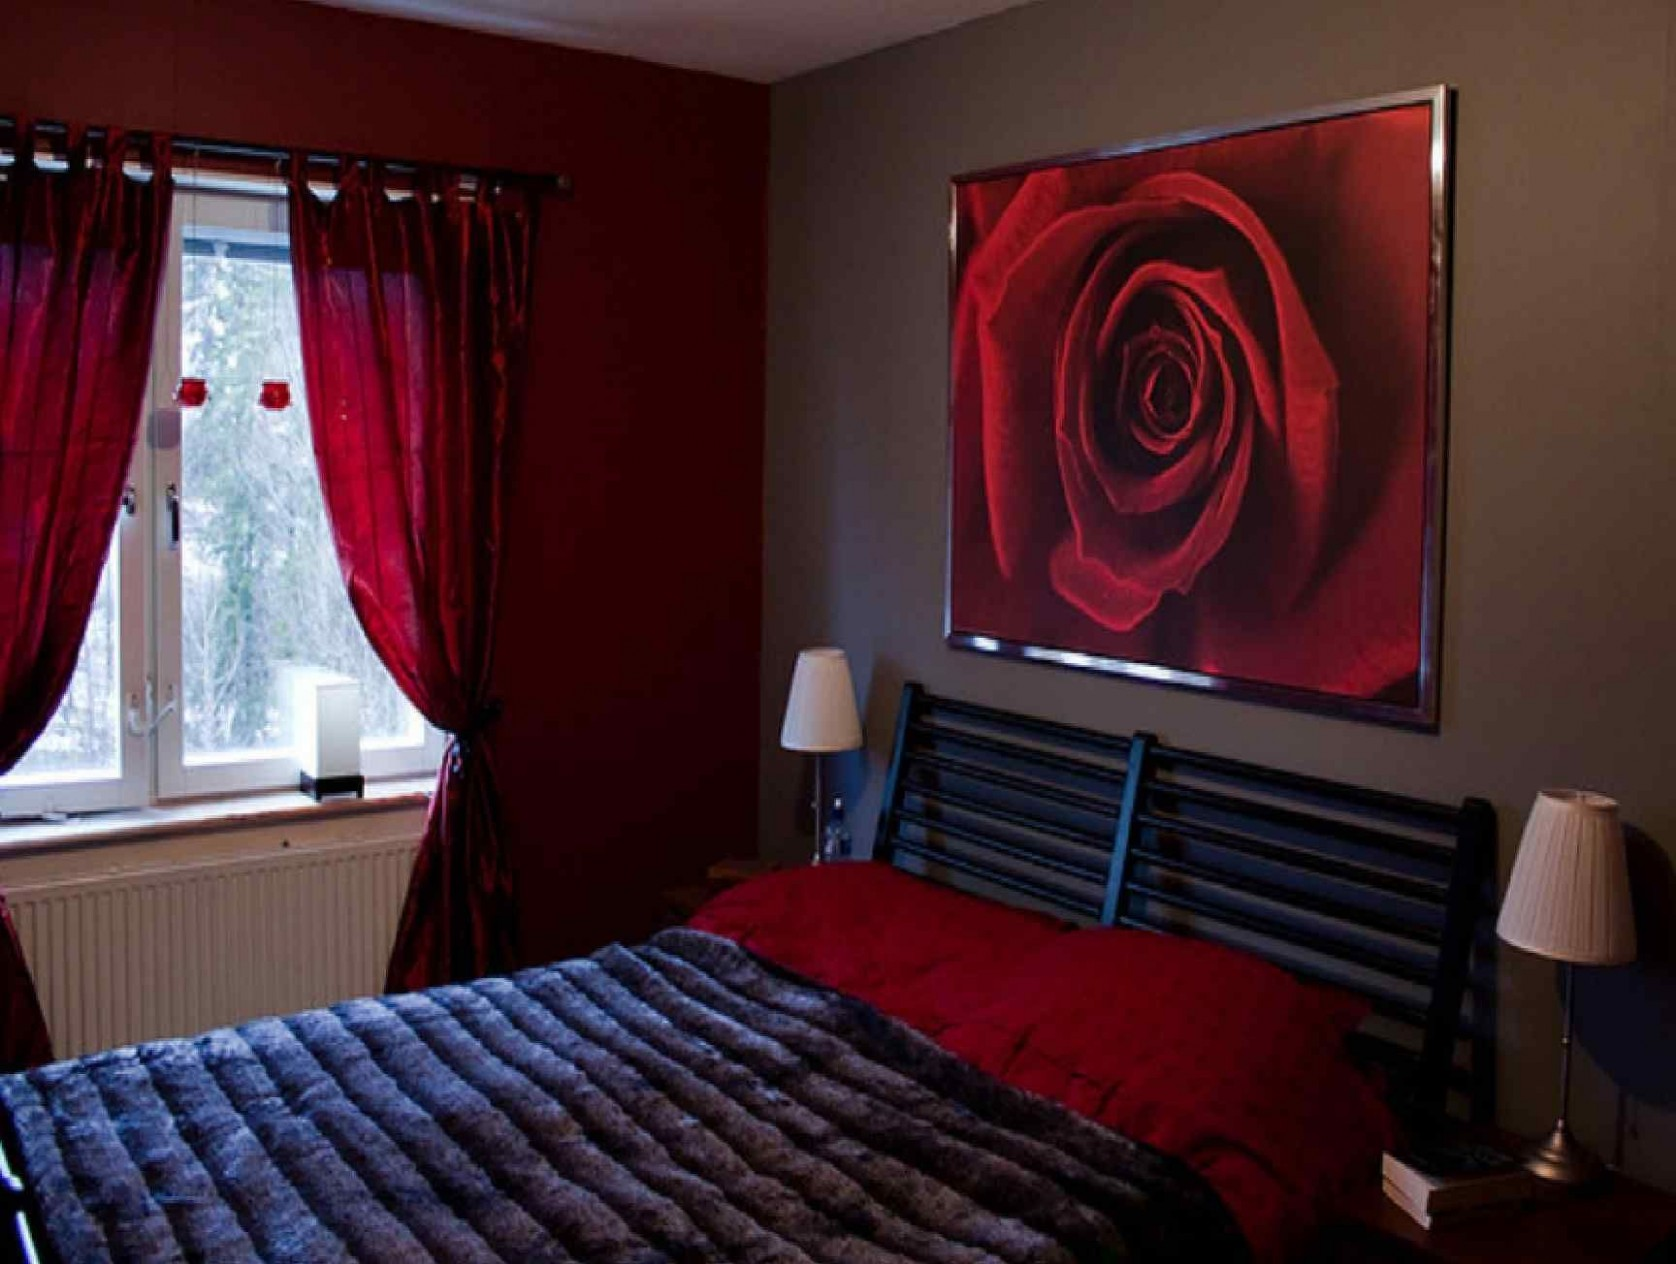 12 Red Bedroom Ideas That Look Pretty Classy in 1212  Red bedroom  - Bedroom Ideas Red And Black